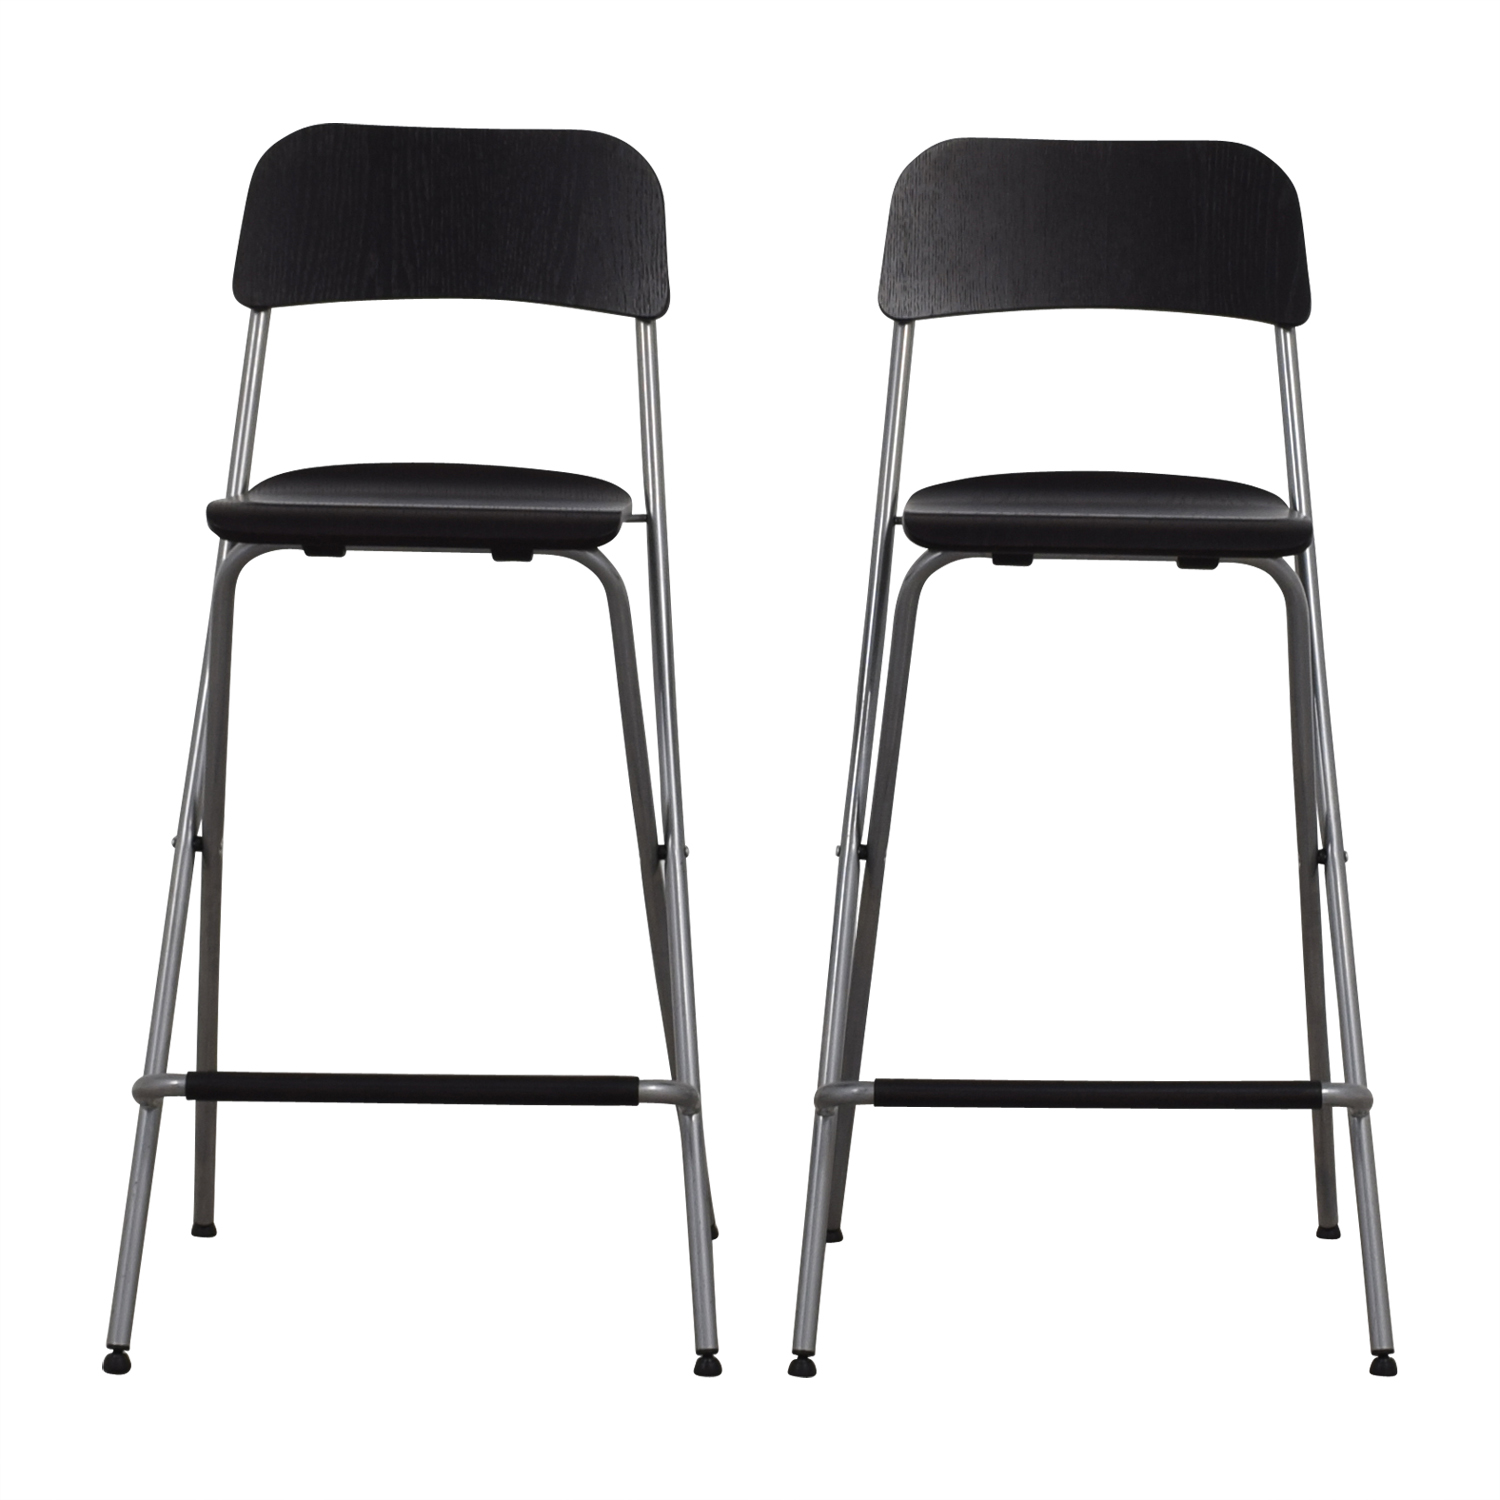 Superb 60 Off Ikea Foldable Barstool Chairs Chairs Gmtry Best Dining Table And Chair Ideas Images Gmtryco